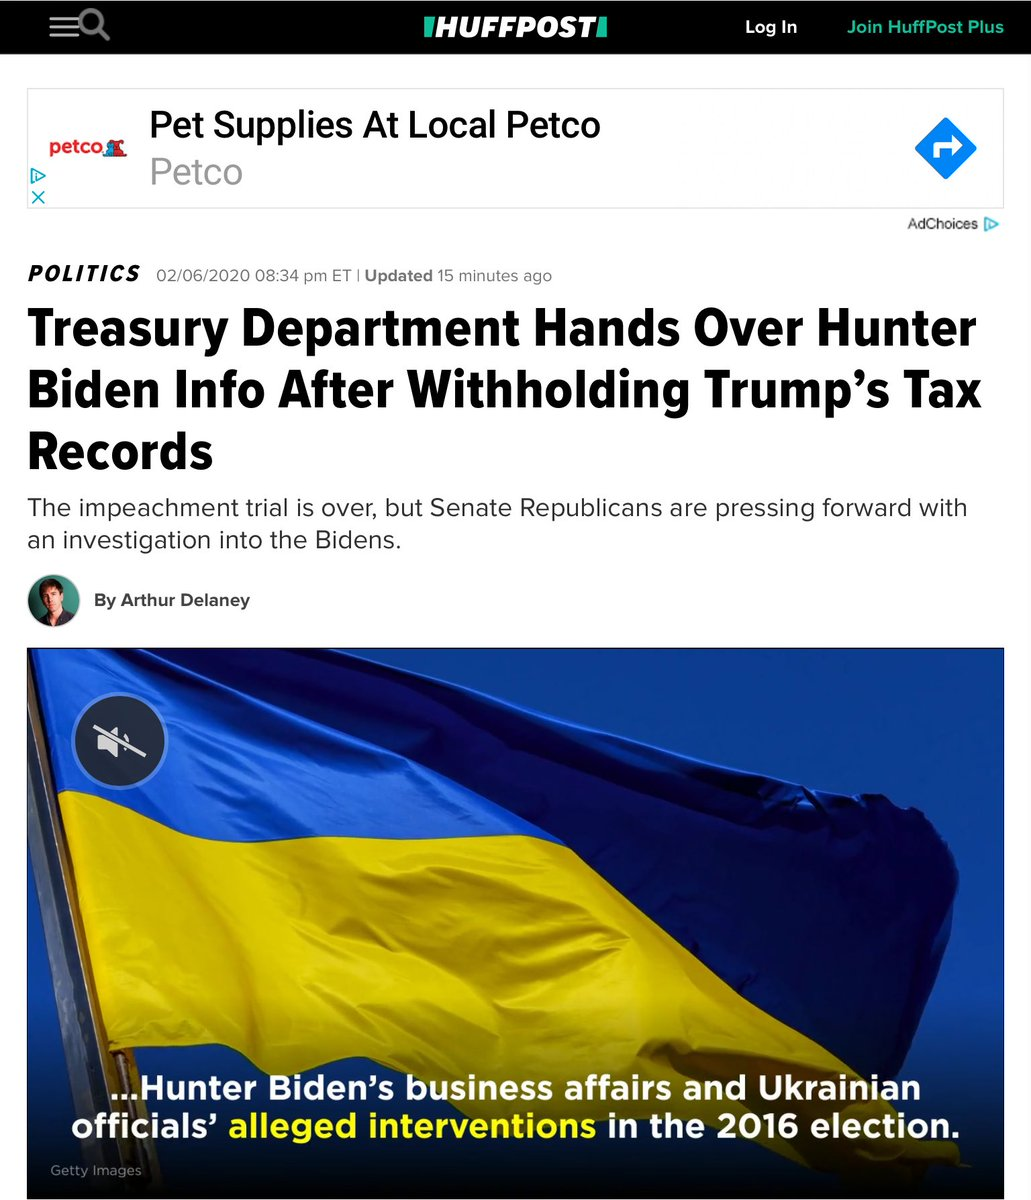 """When Sec. Mnuchin blocked a request for the president's taxes he said """"The legal implications of this request could affect protections for all Americans against politically-motivated disclosures of personal tax information, regardless of which party is in power"""" #HunterBiden"""